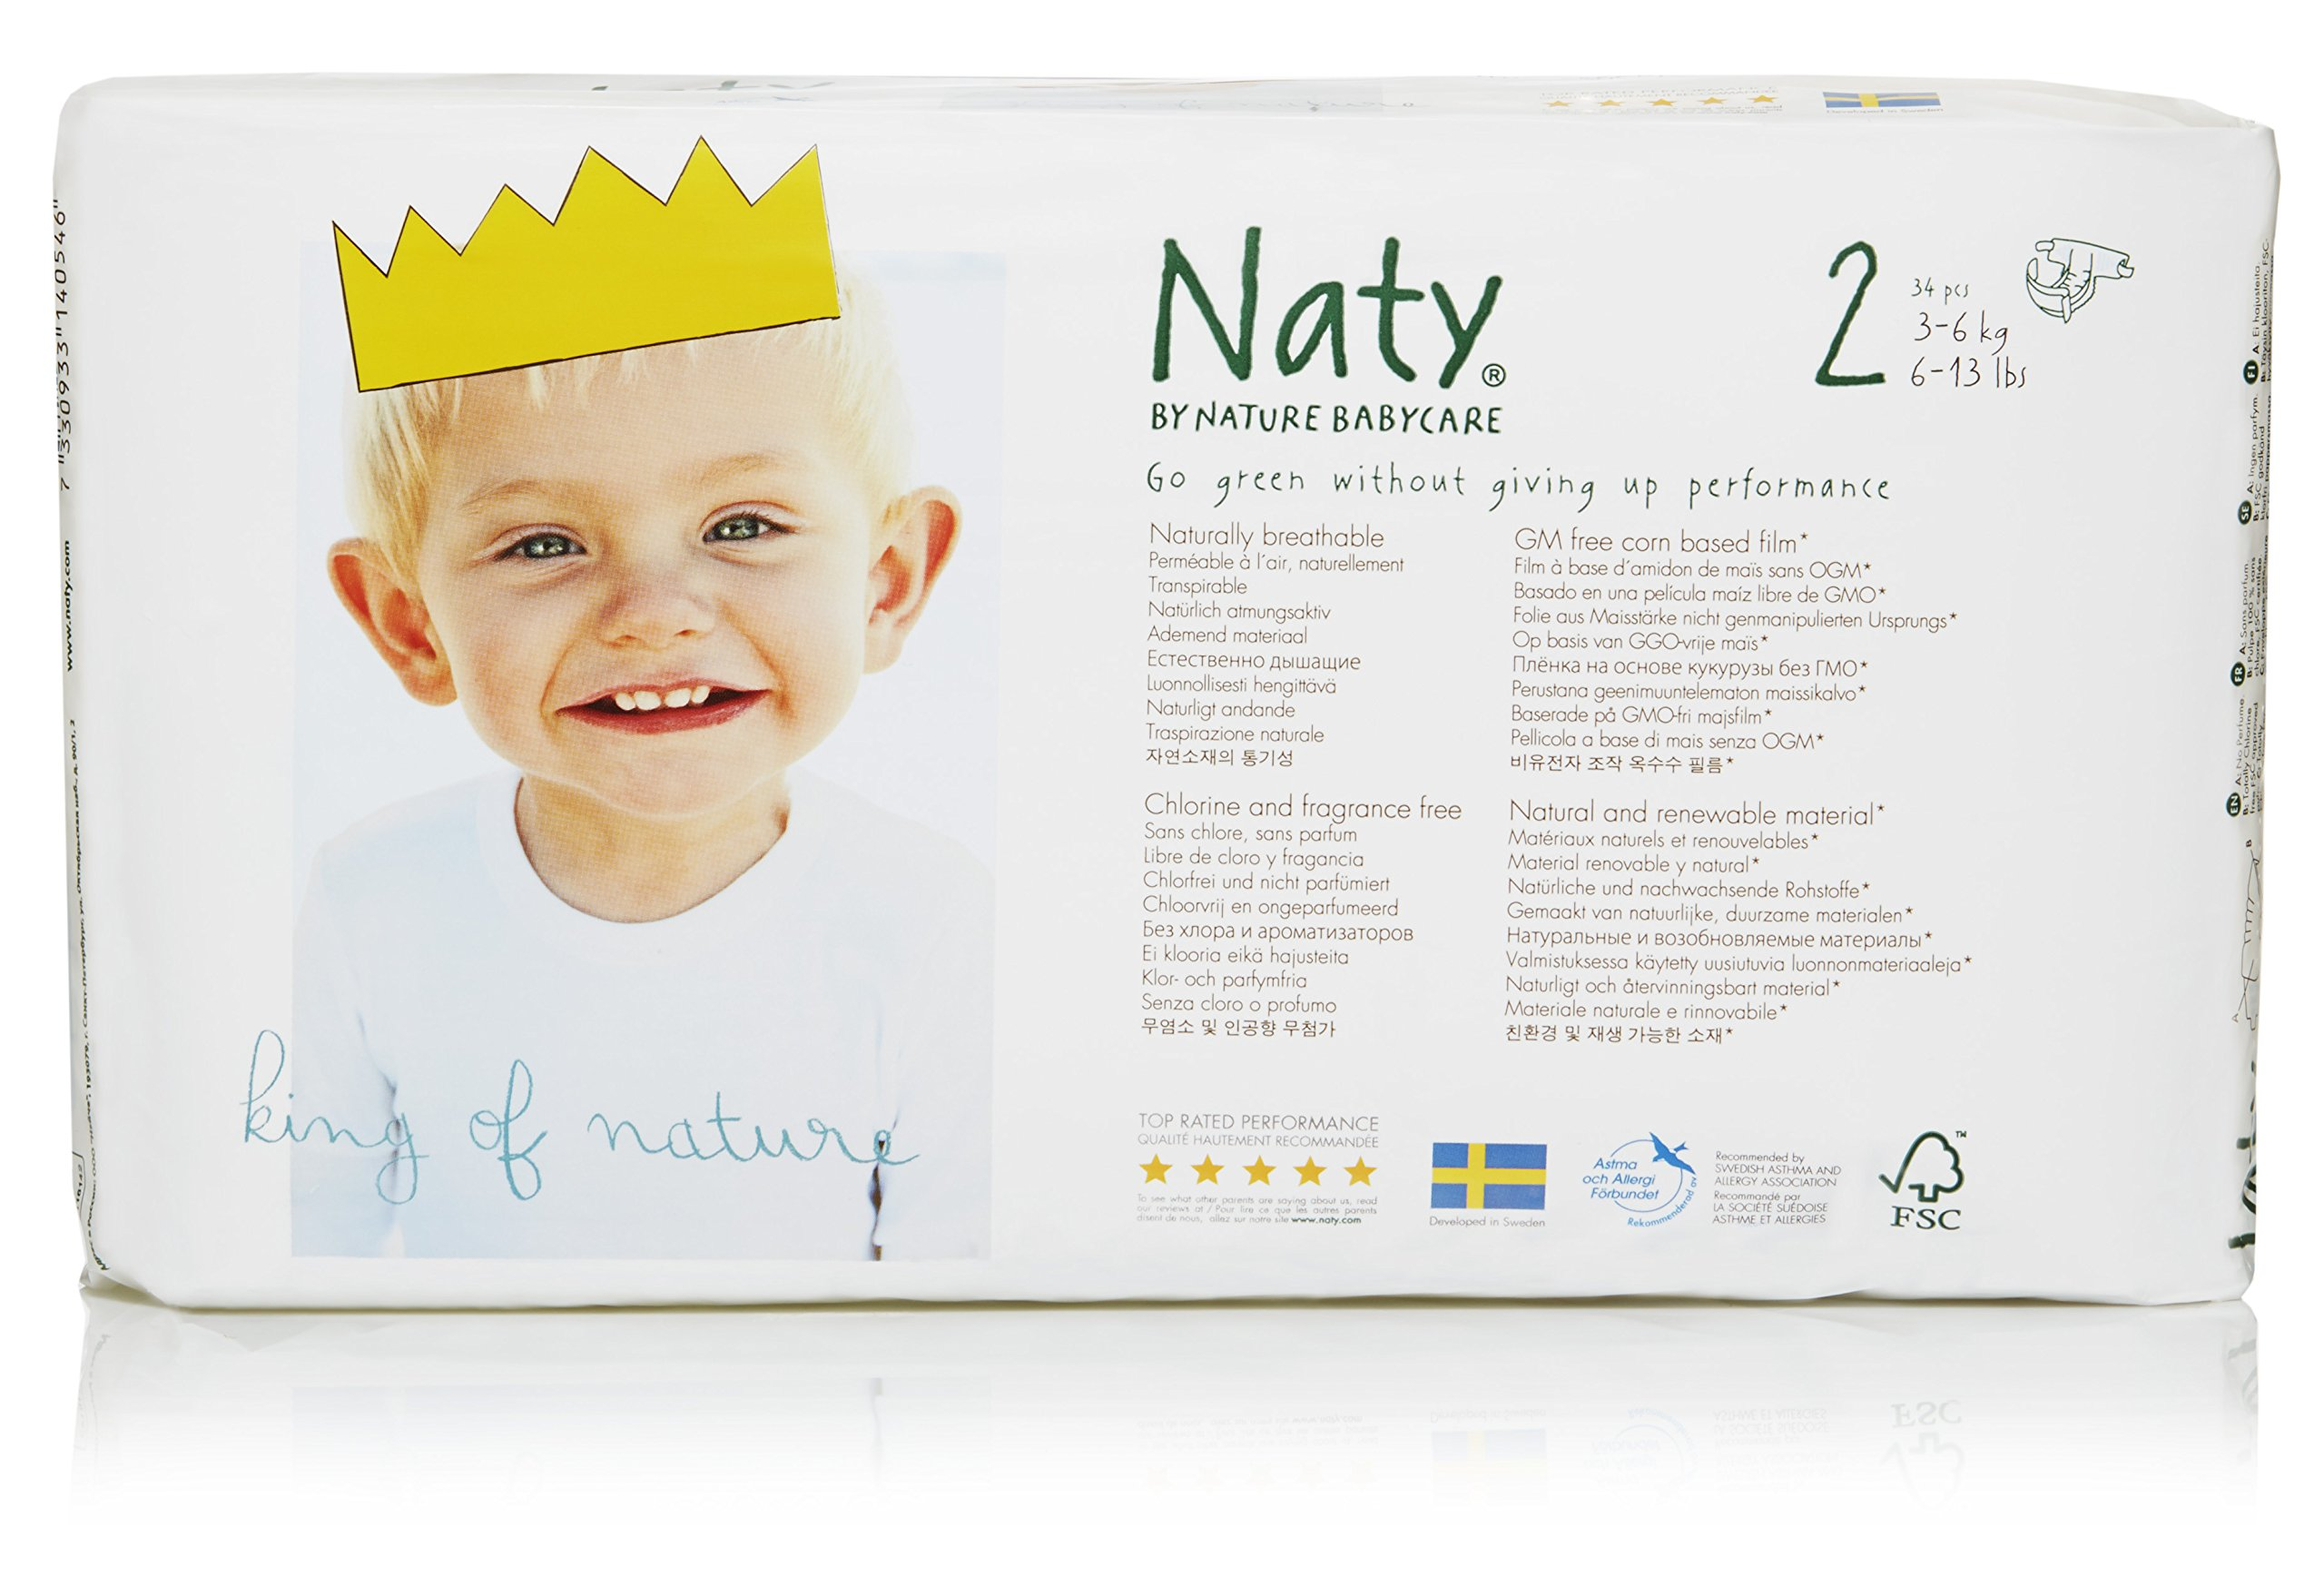 Naty by Nature Babycare Eco-Friendly Premium Disposable Diapers for Sensitive Skin, Size 2, 4 packs of 34 (136 Count) (Chemical, chlorine, perfume free)